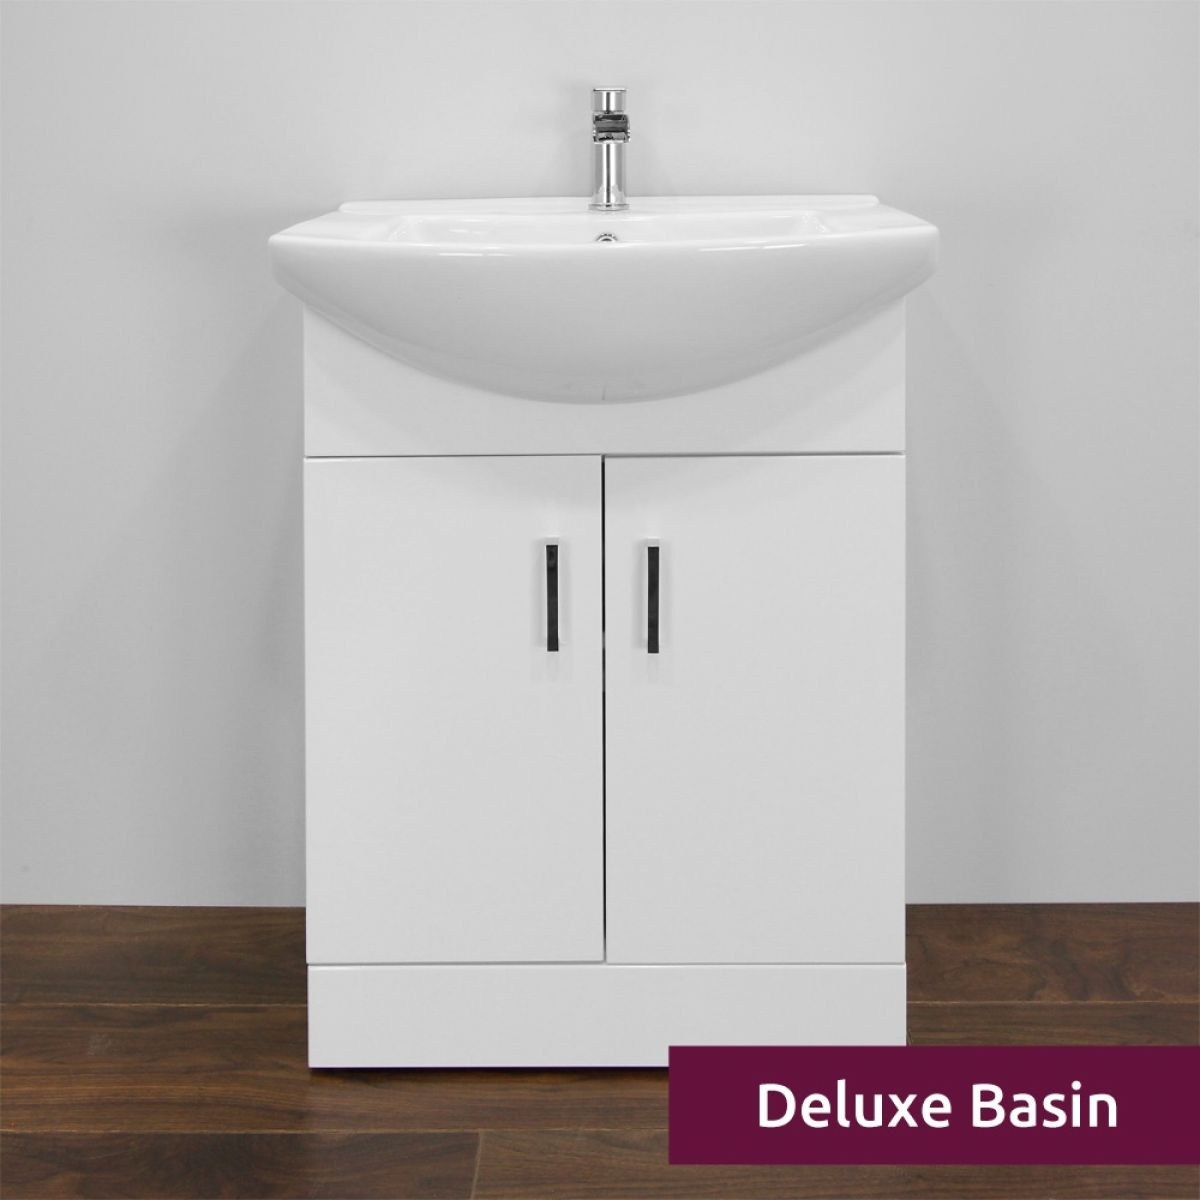 Premier High Gloss White Vanity Unit 650mm with Deluxe Basin Front